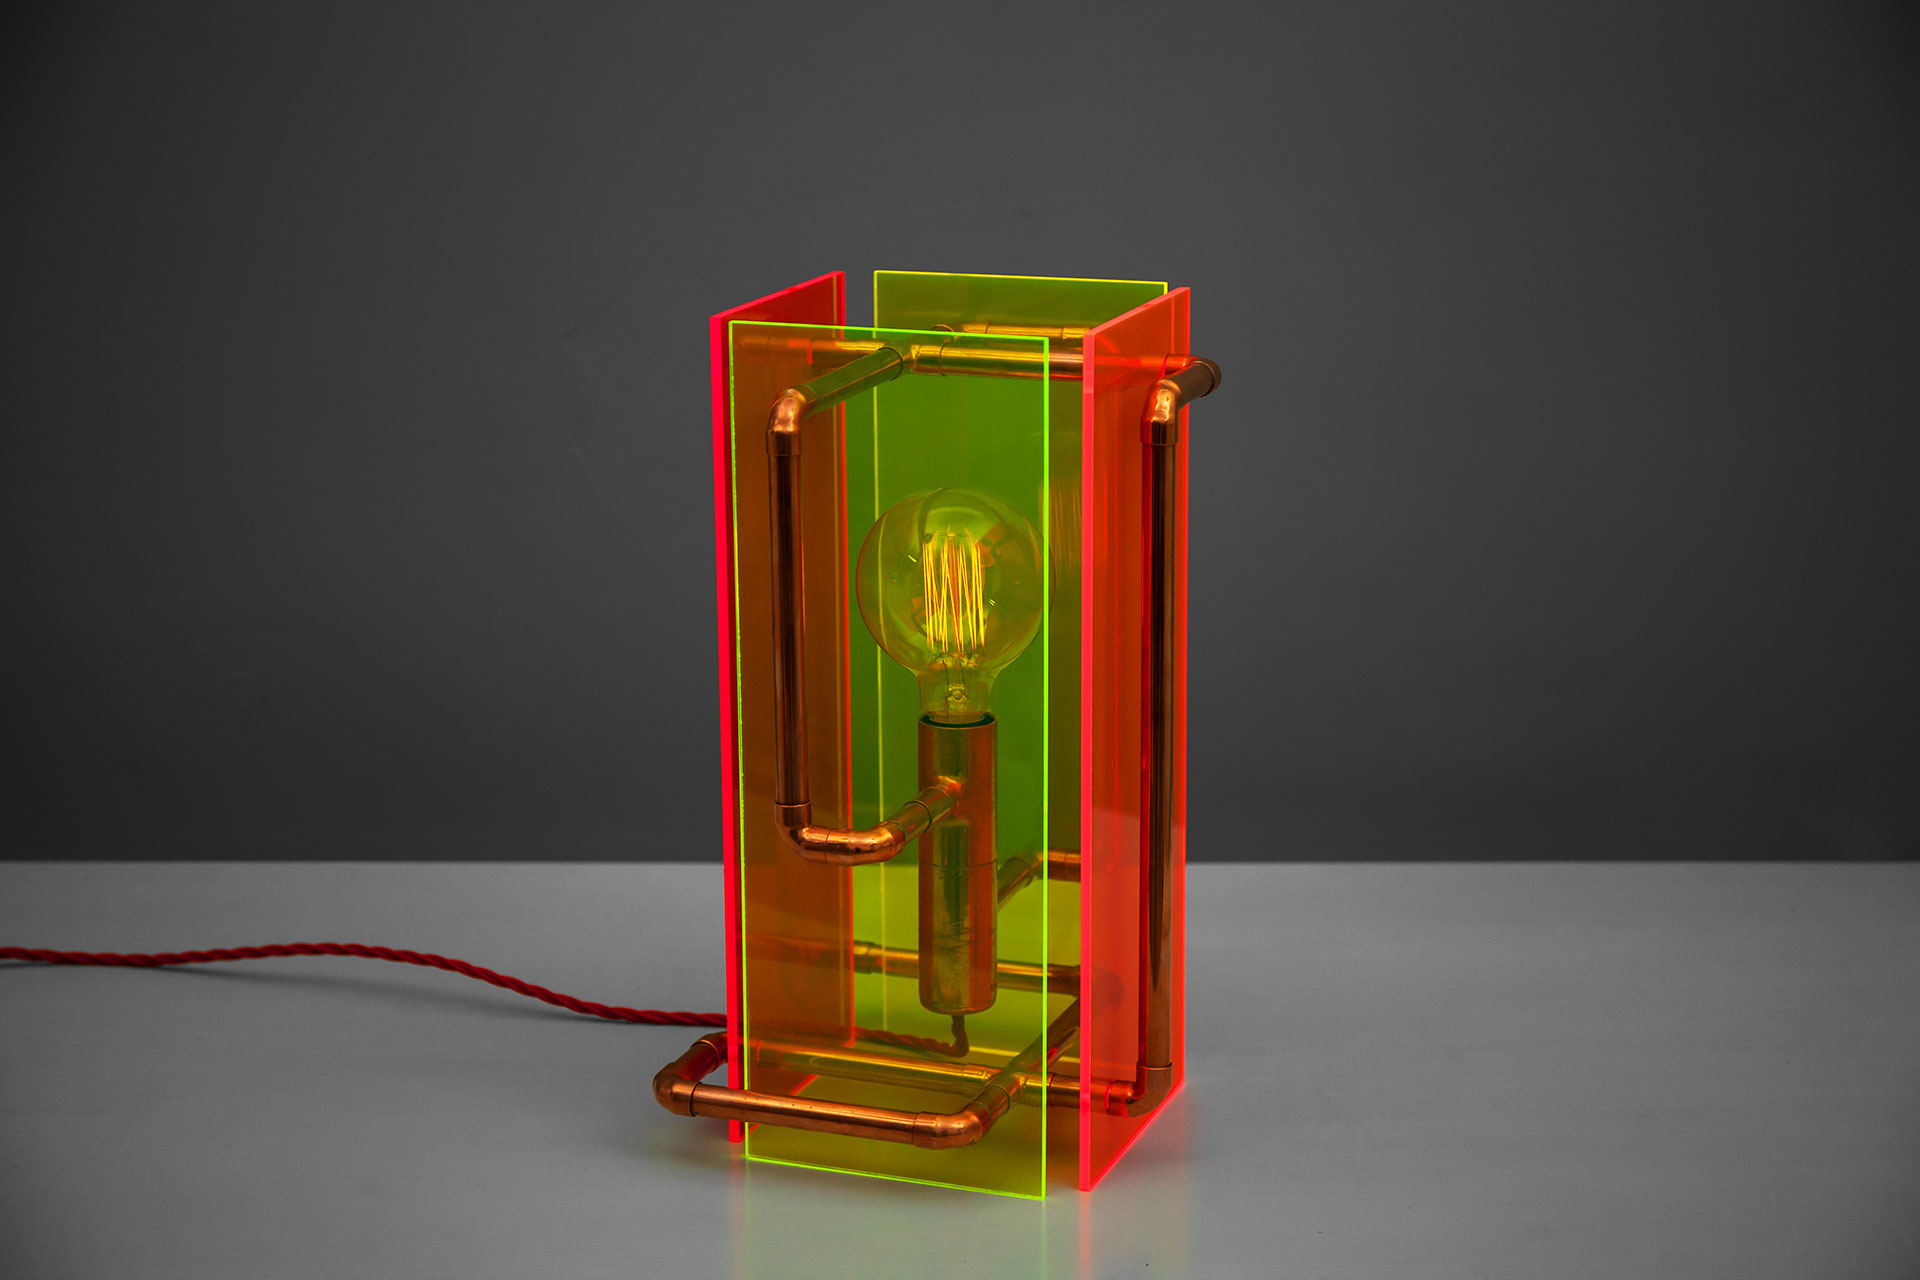 Contemporary ighting design made of fluorescent plexiglass and copper pipes with touch dimmer